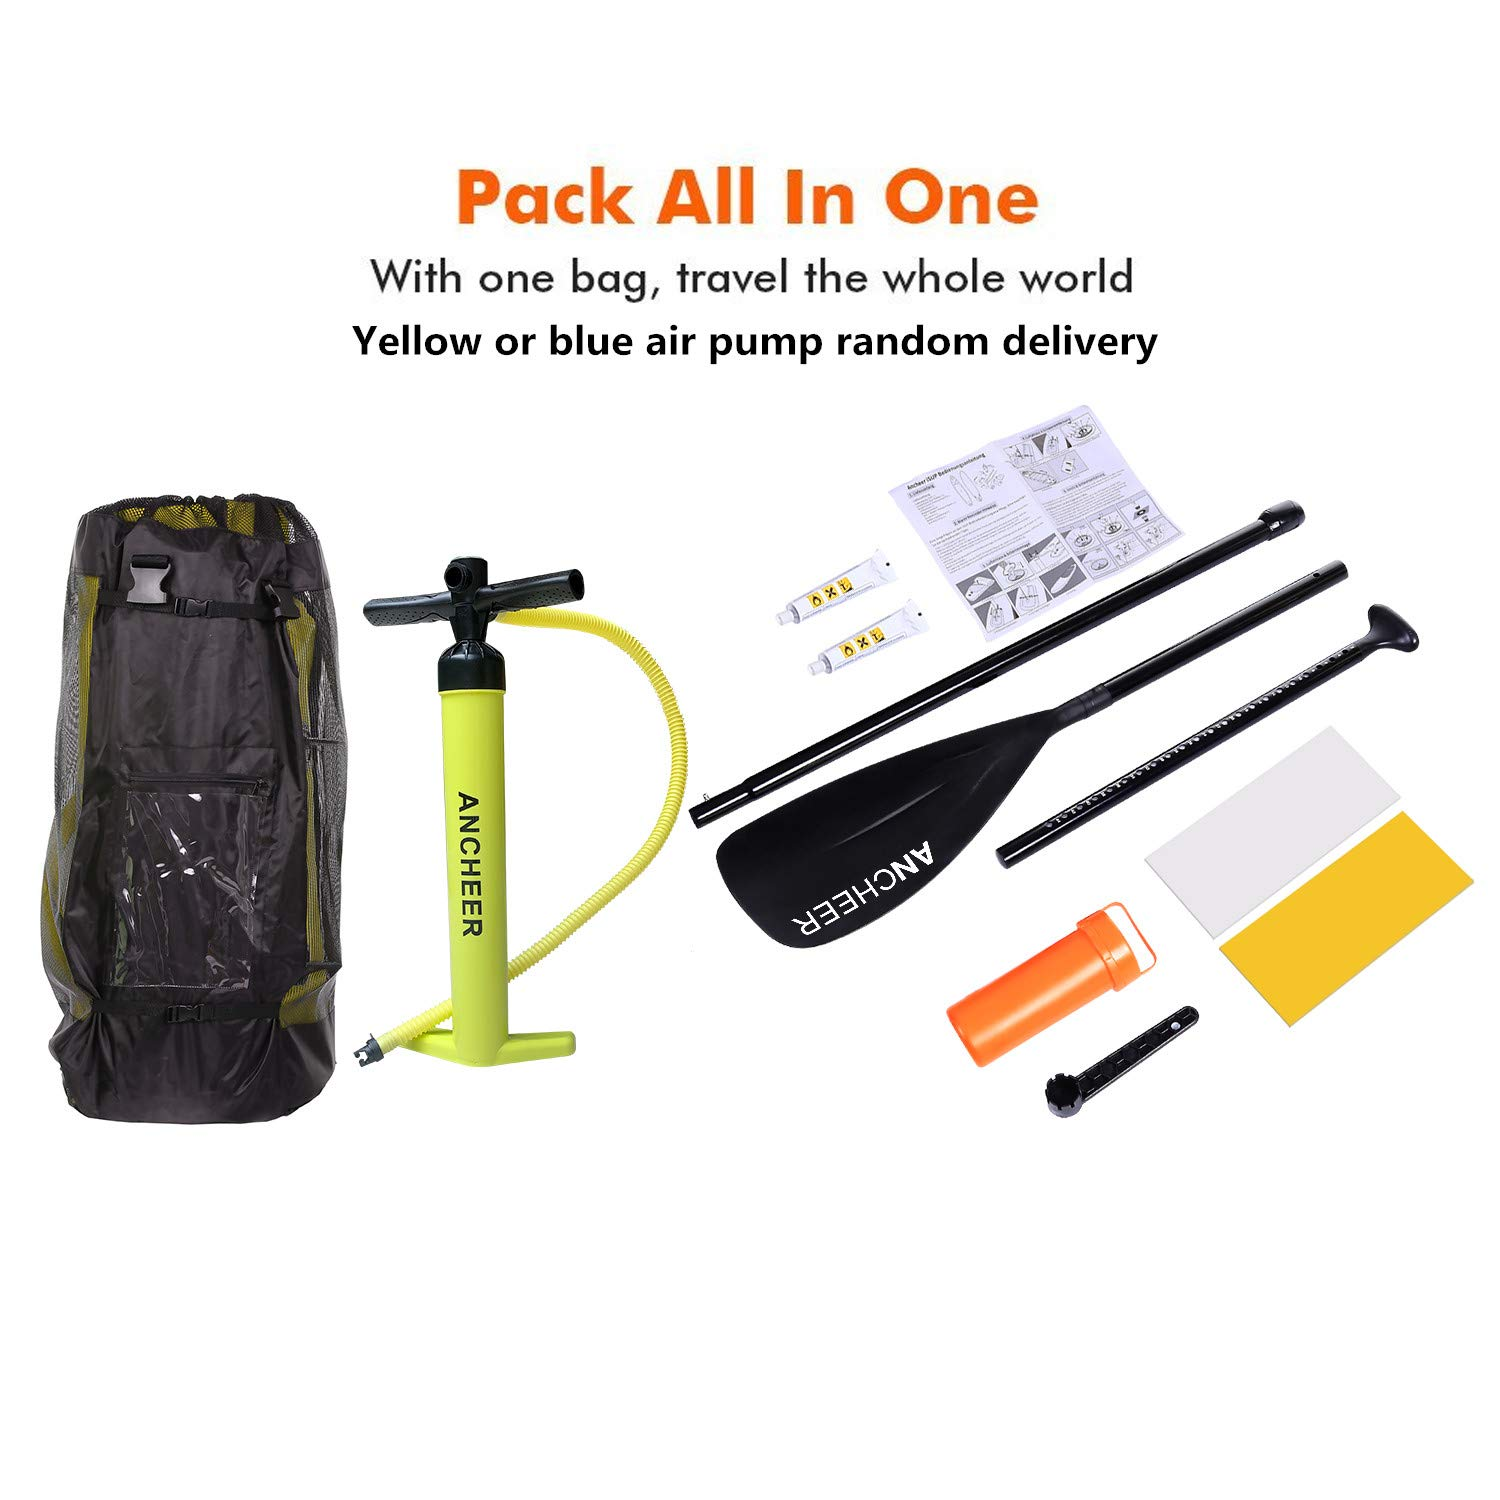 ANCHEER Inflatable Stand Up Paddle Board 10', Non-Slip Deck(6 Inches Thick), iSUP Boards Package w/Adjustable Paddle, Leash, Hand Pump and Backpack, Youth & Adult by ANCHEER (Image #6)